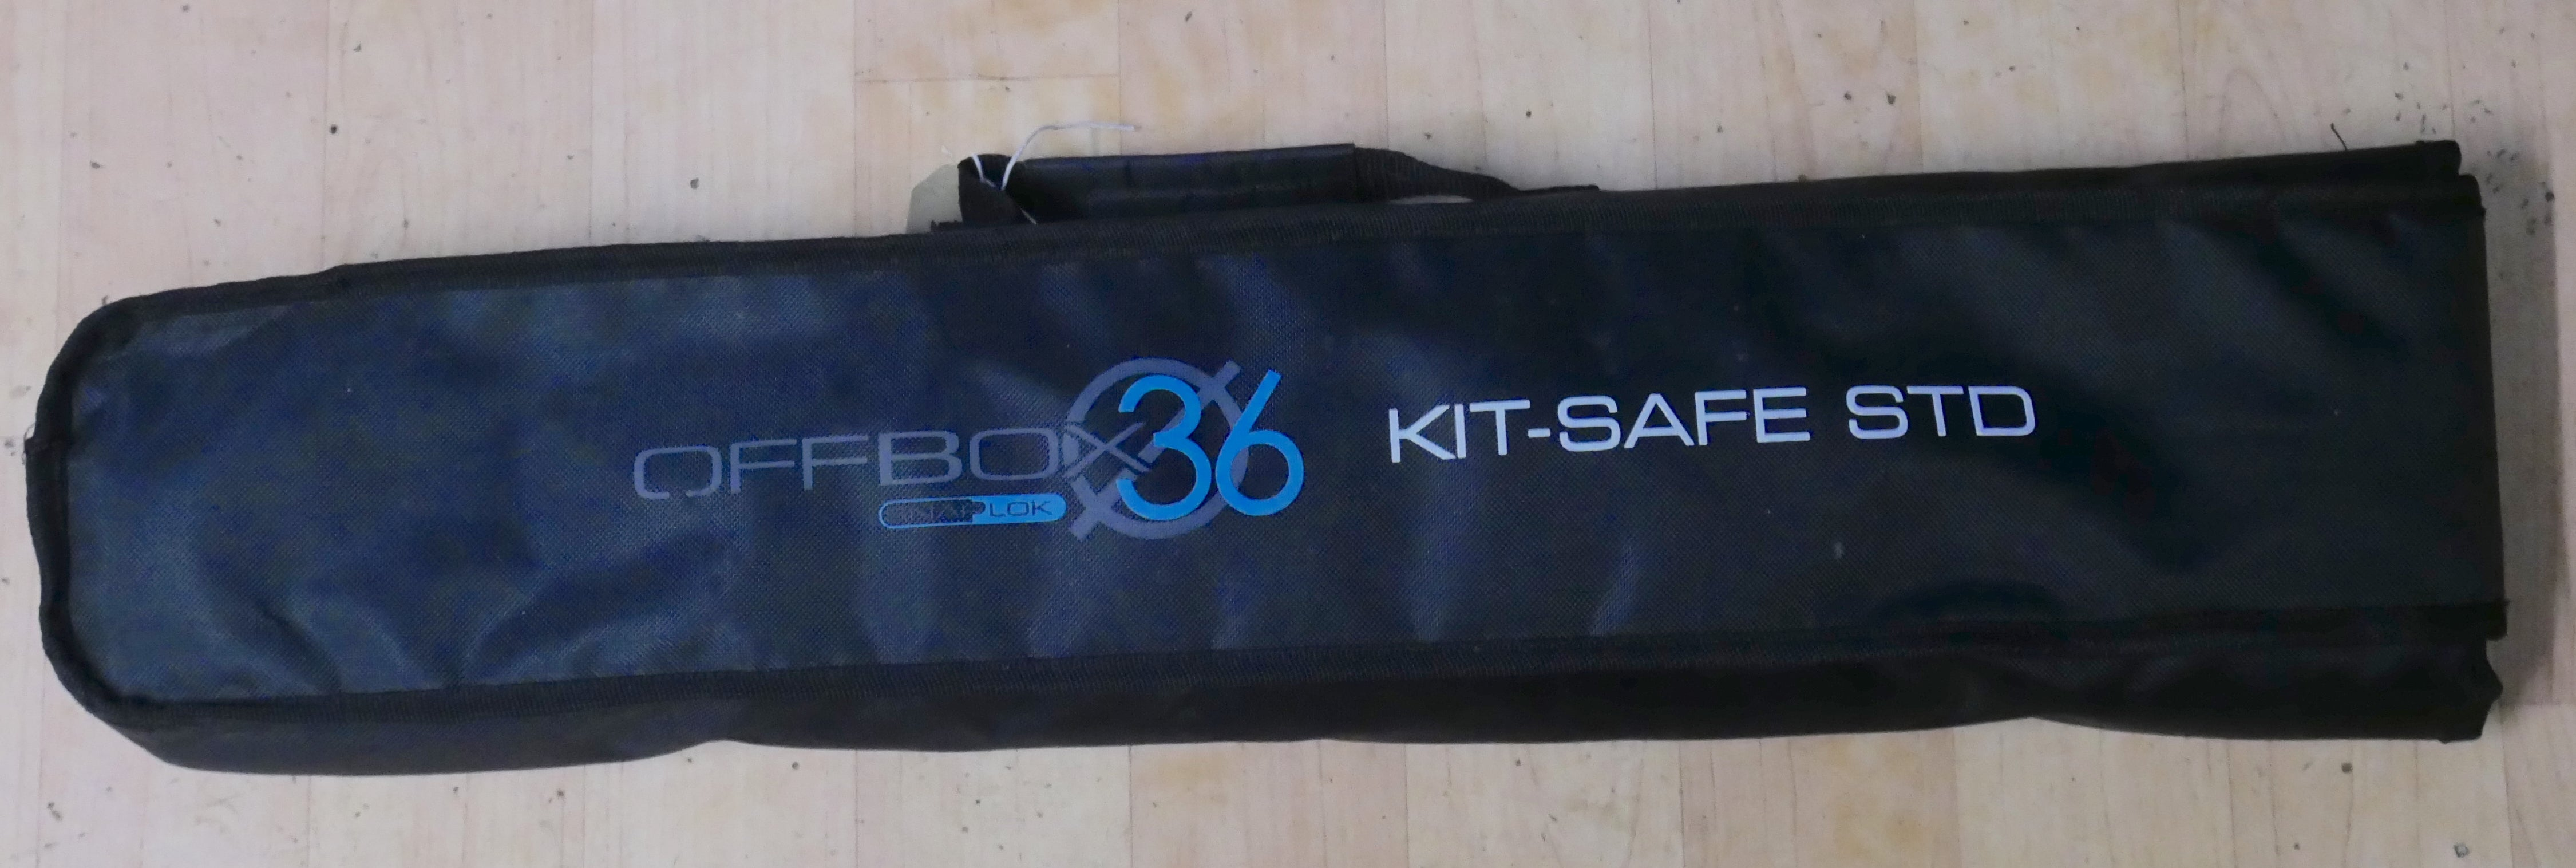 Preston Offbox 36 Kit-Safe Standard